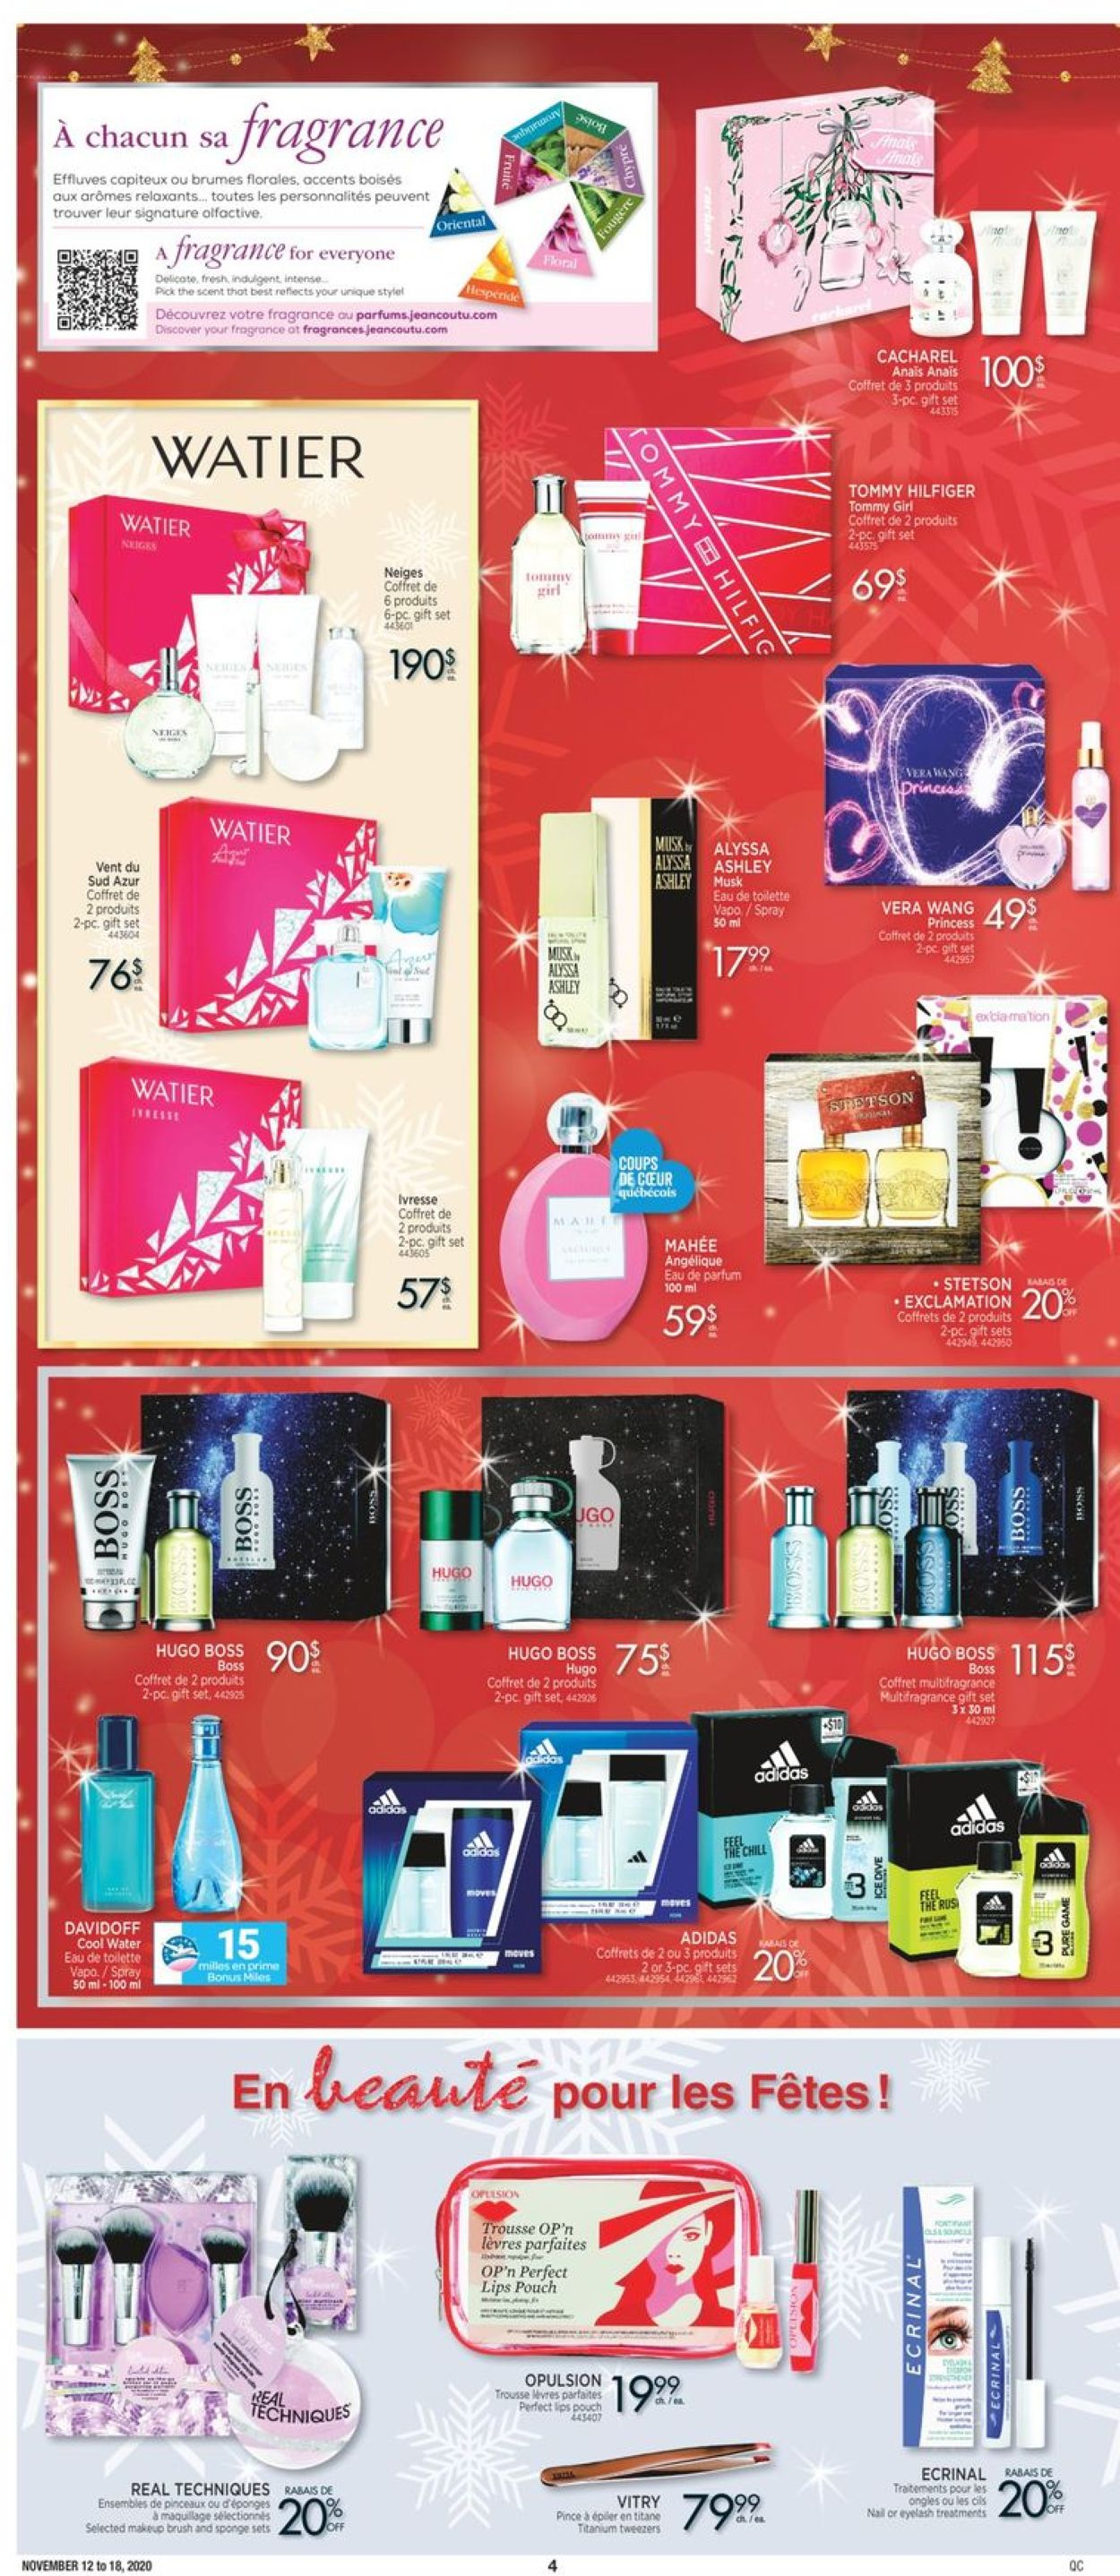 Jean Coutu - Holiday 2020 Flyer - 11/12-11/18/2020 (Page 3)